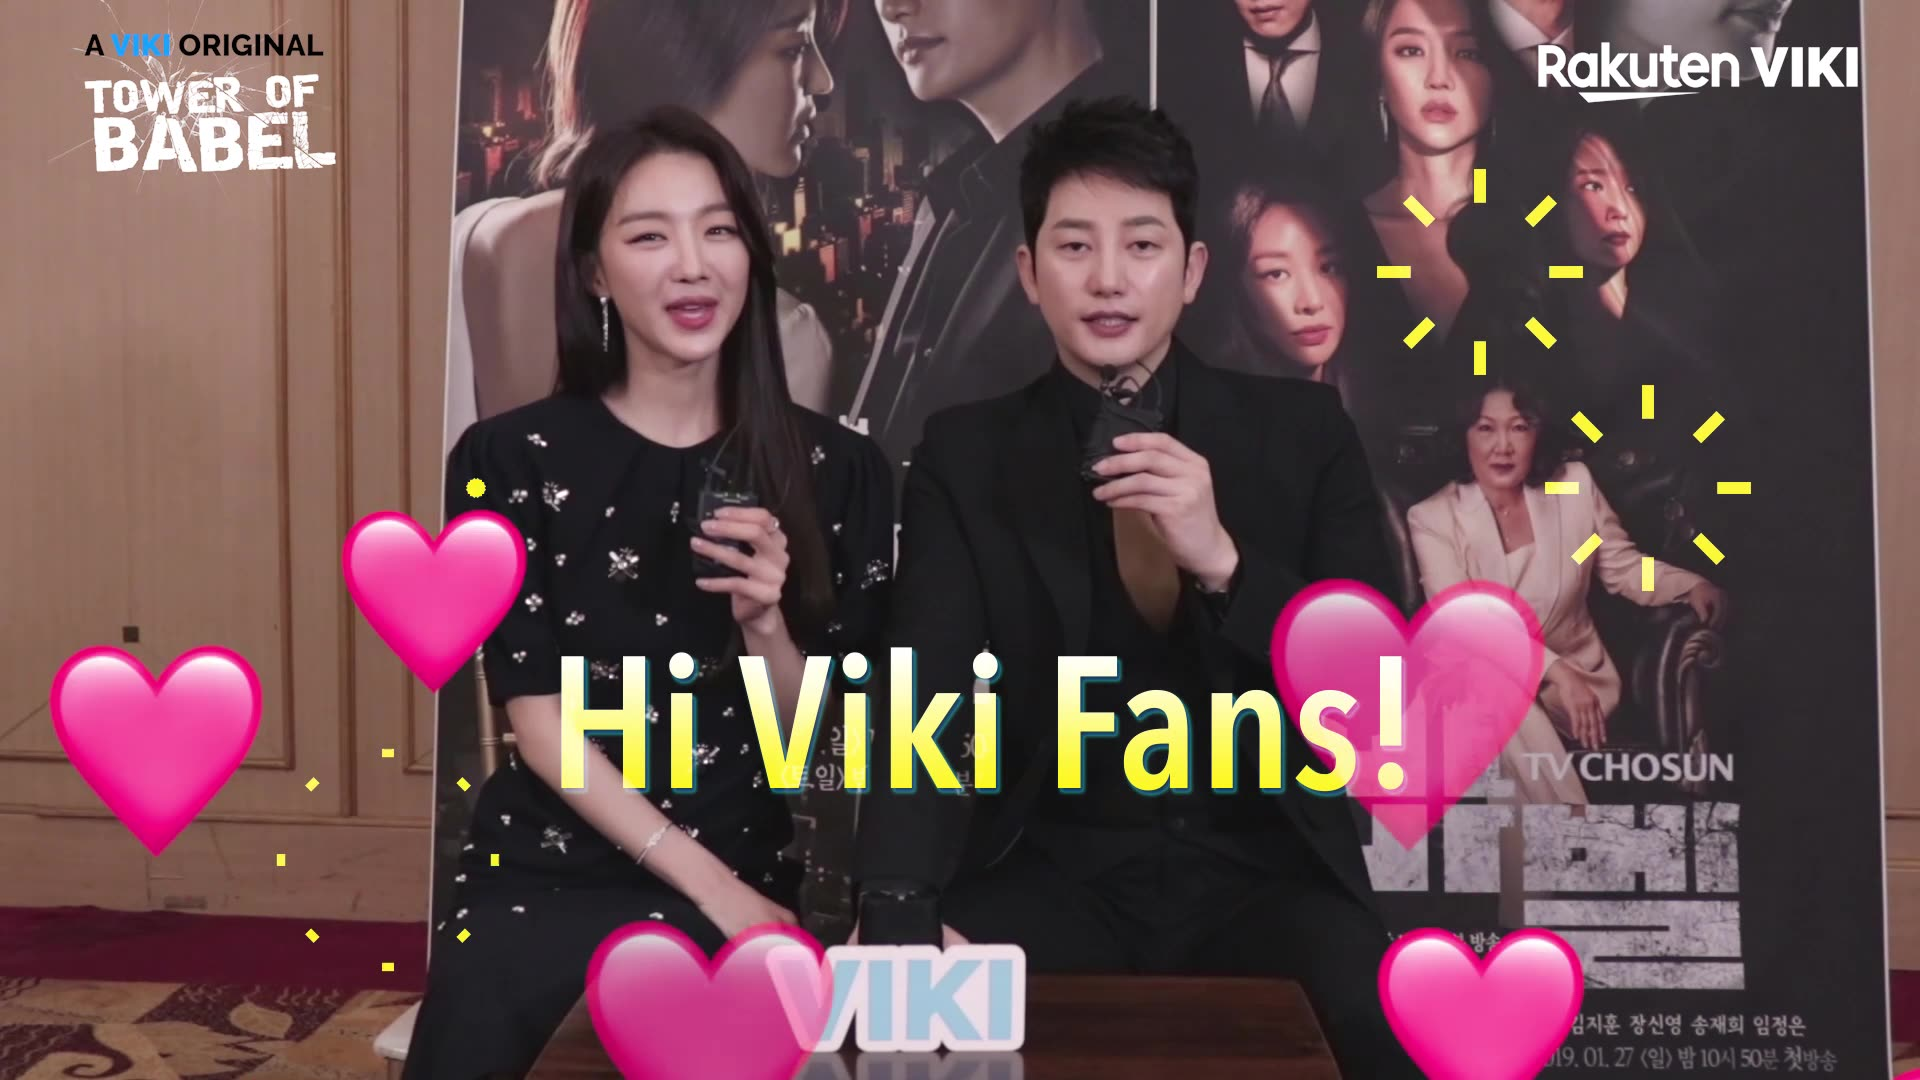 Shoutout to Viki Fans: Tower of Babel